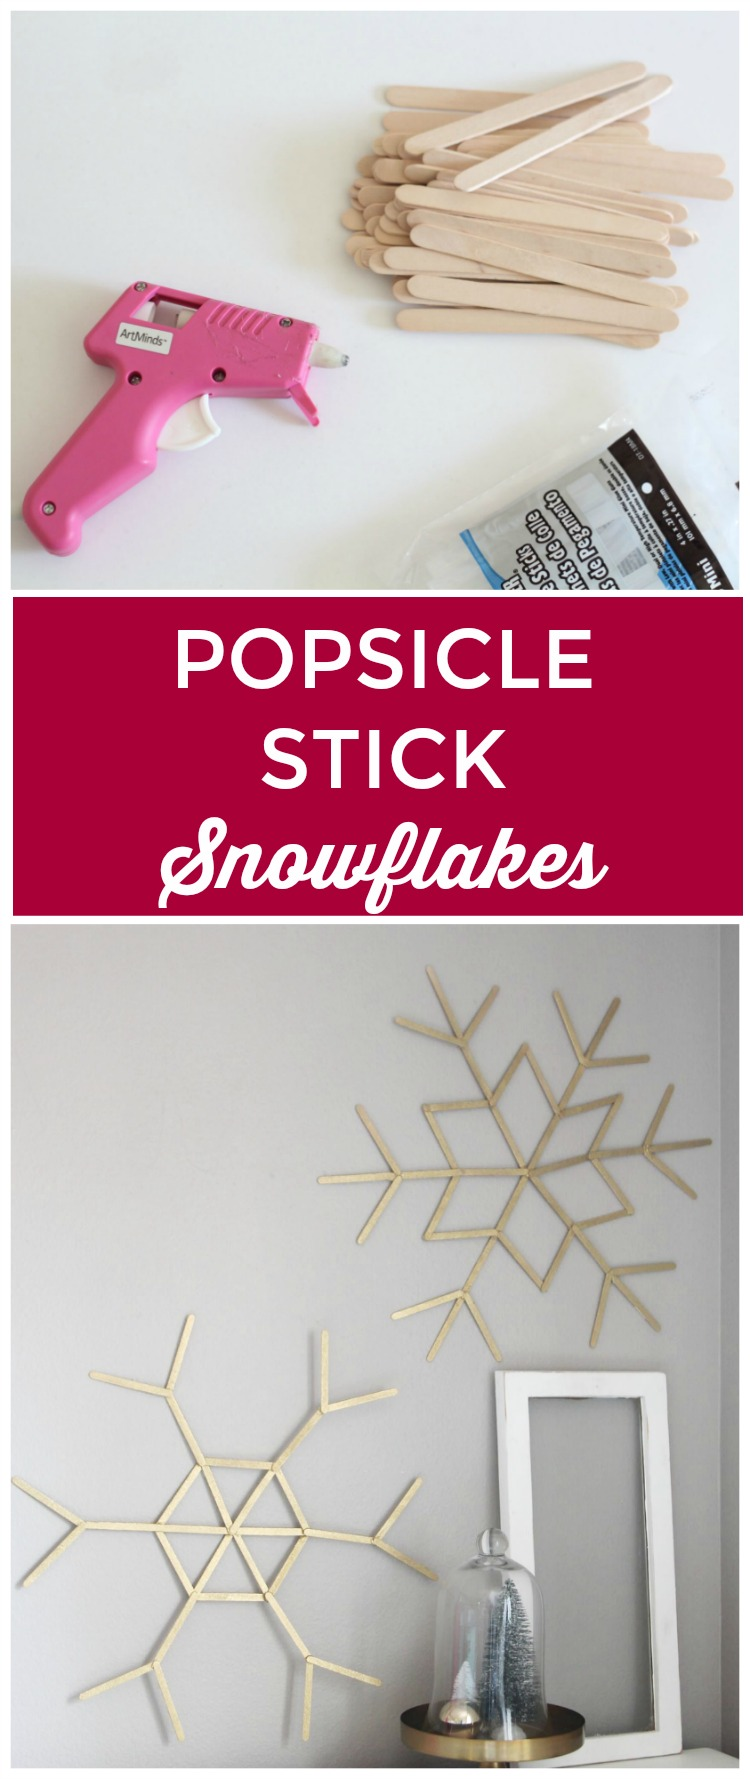 Use popsicle sticks for the ultimate snowflake craft. Huge snowflakes made with popscicle sticks and hot glue